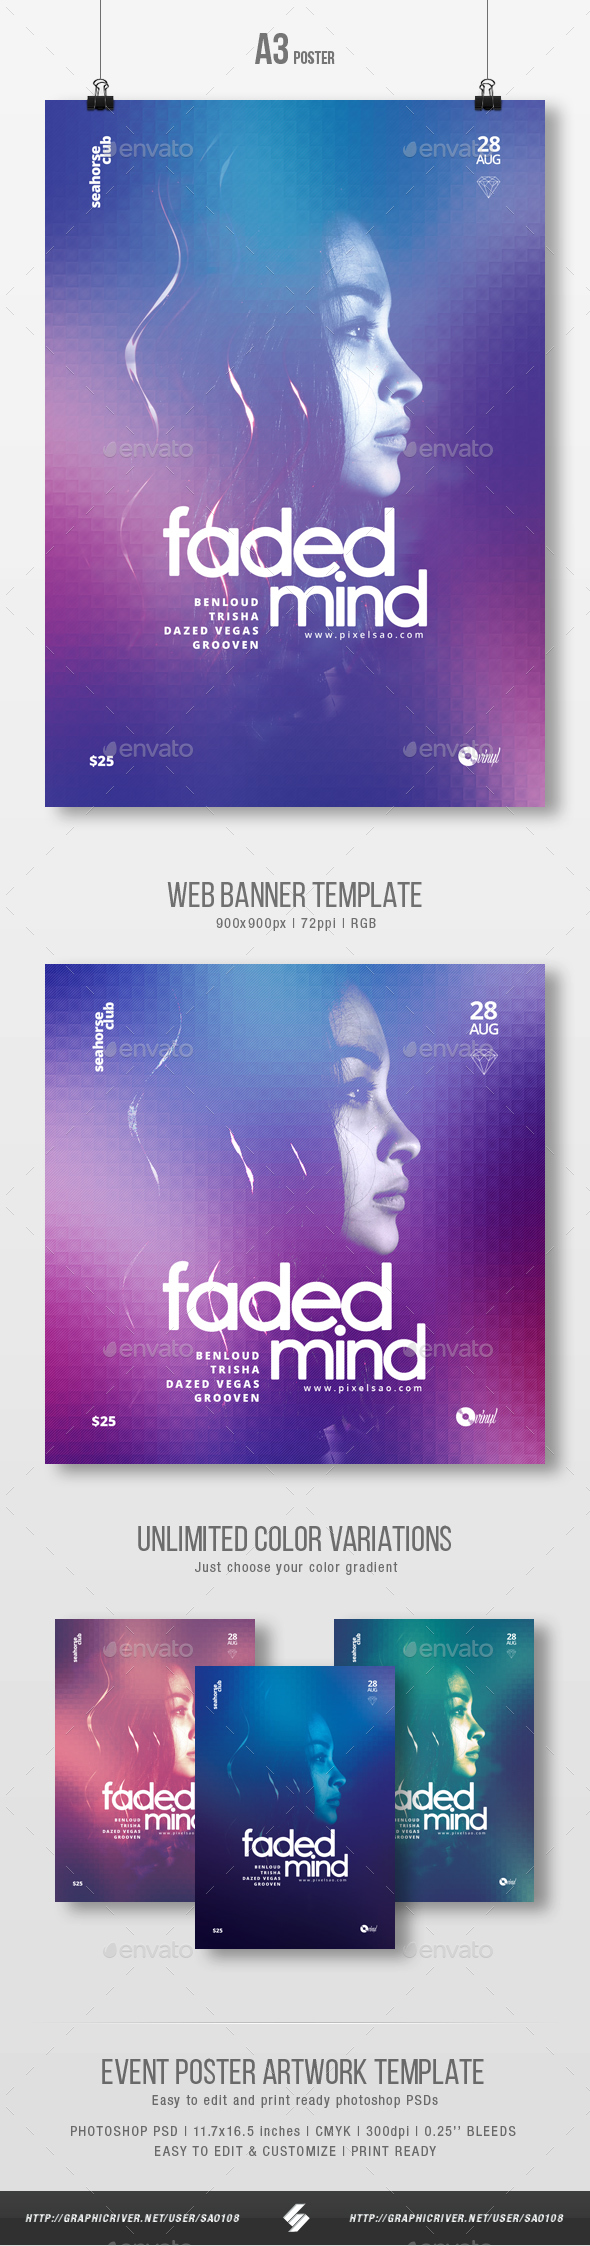 Faded Mind - Minimal Party Flyer / Poster Template A3 - Clubs & Parties Events